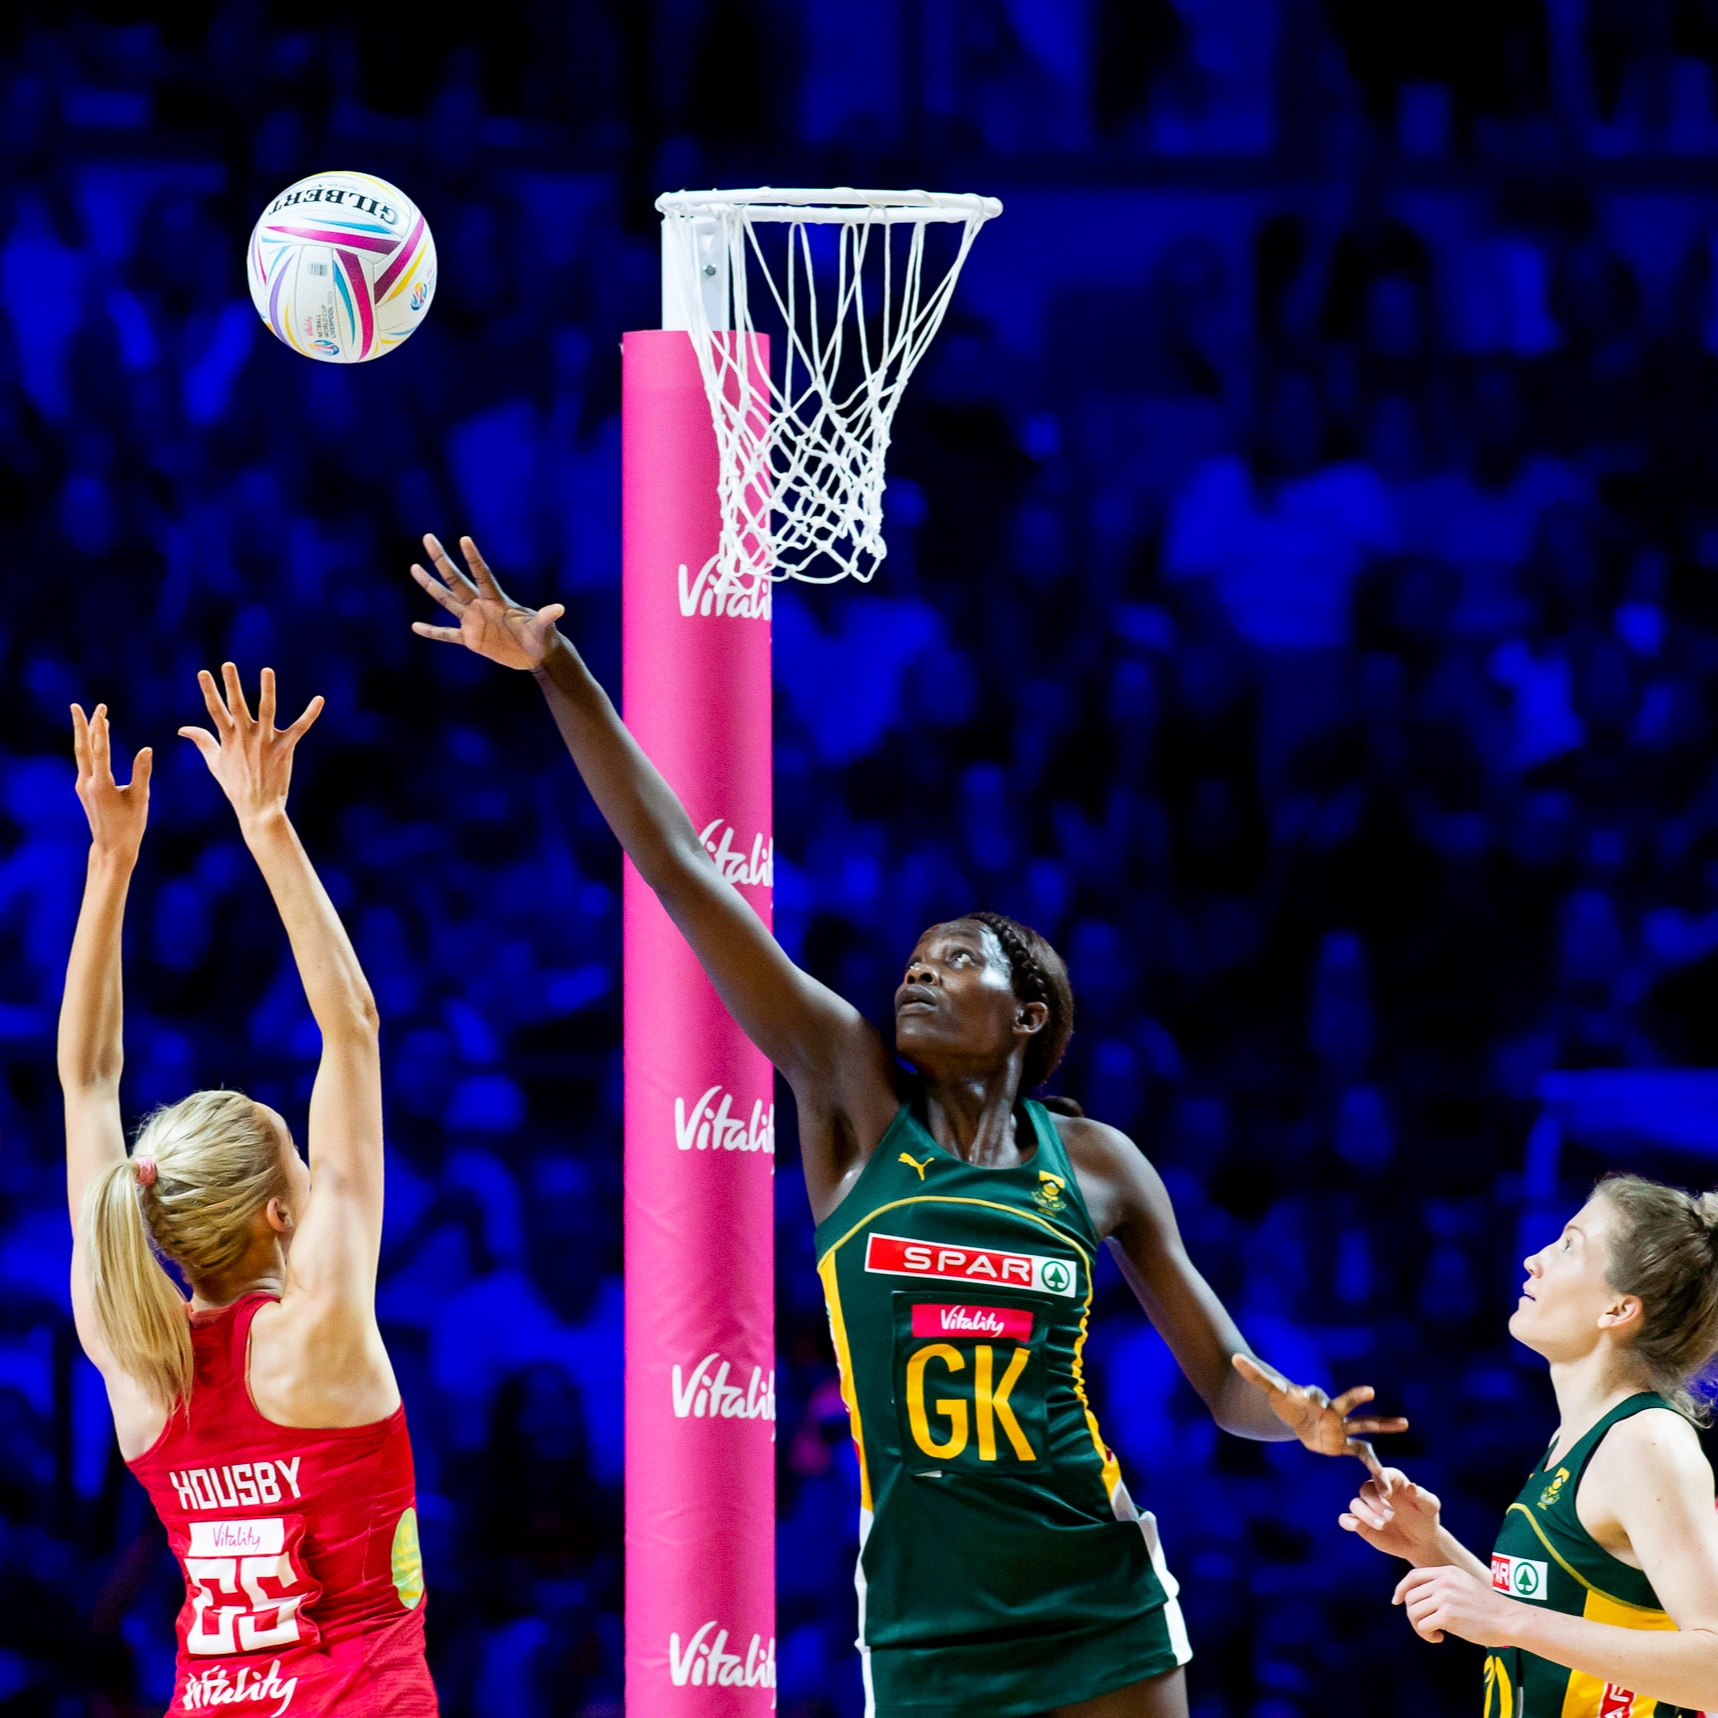 Netball - Hopefully you were all gripped by the excitement of World Cup Netball Fever in the summer? The team did amazingly well winning the Bronze medal.